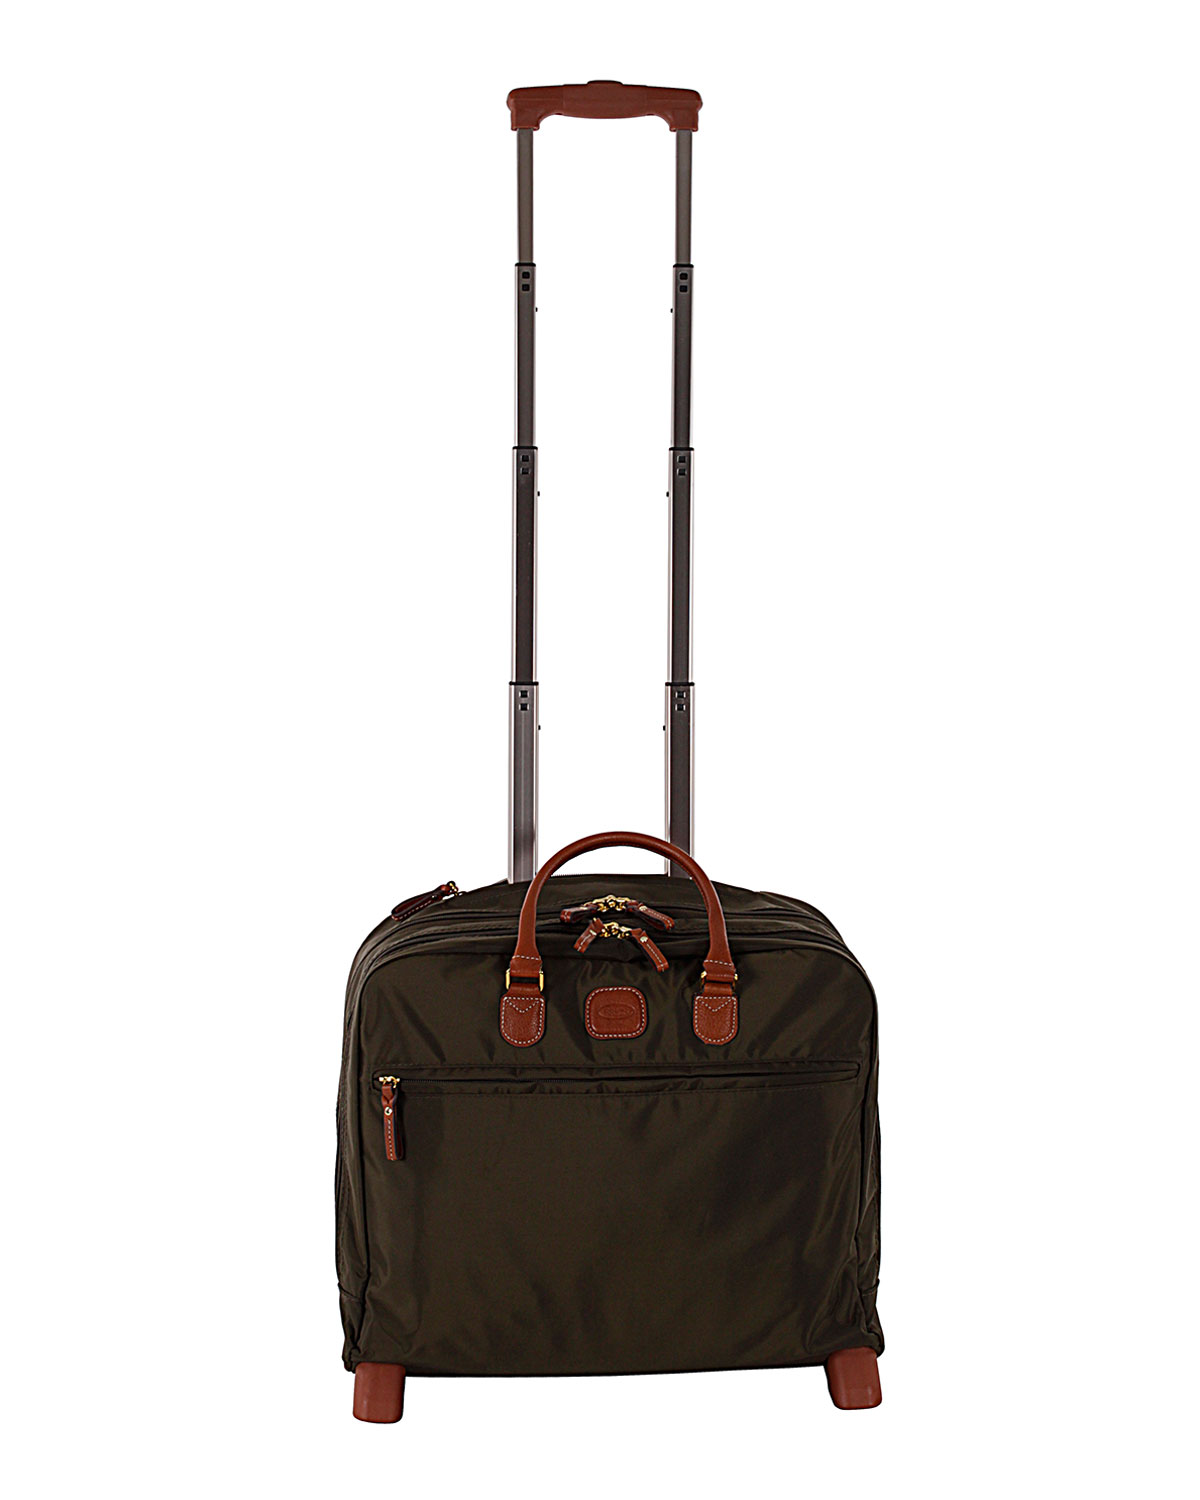 Rolling Pilot Case Luggage